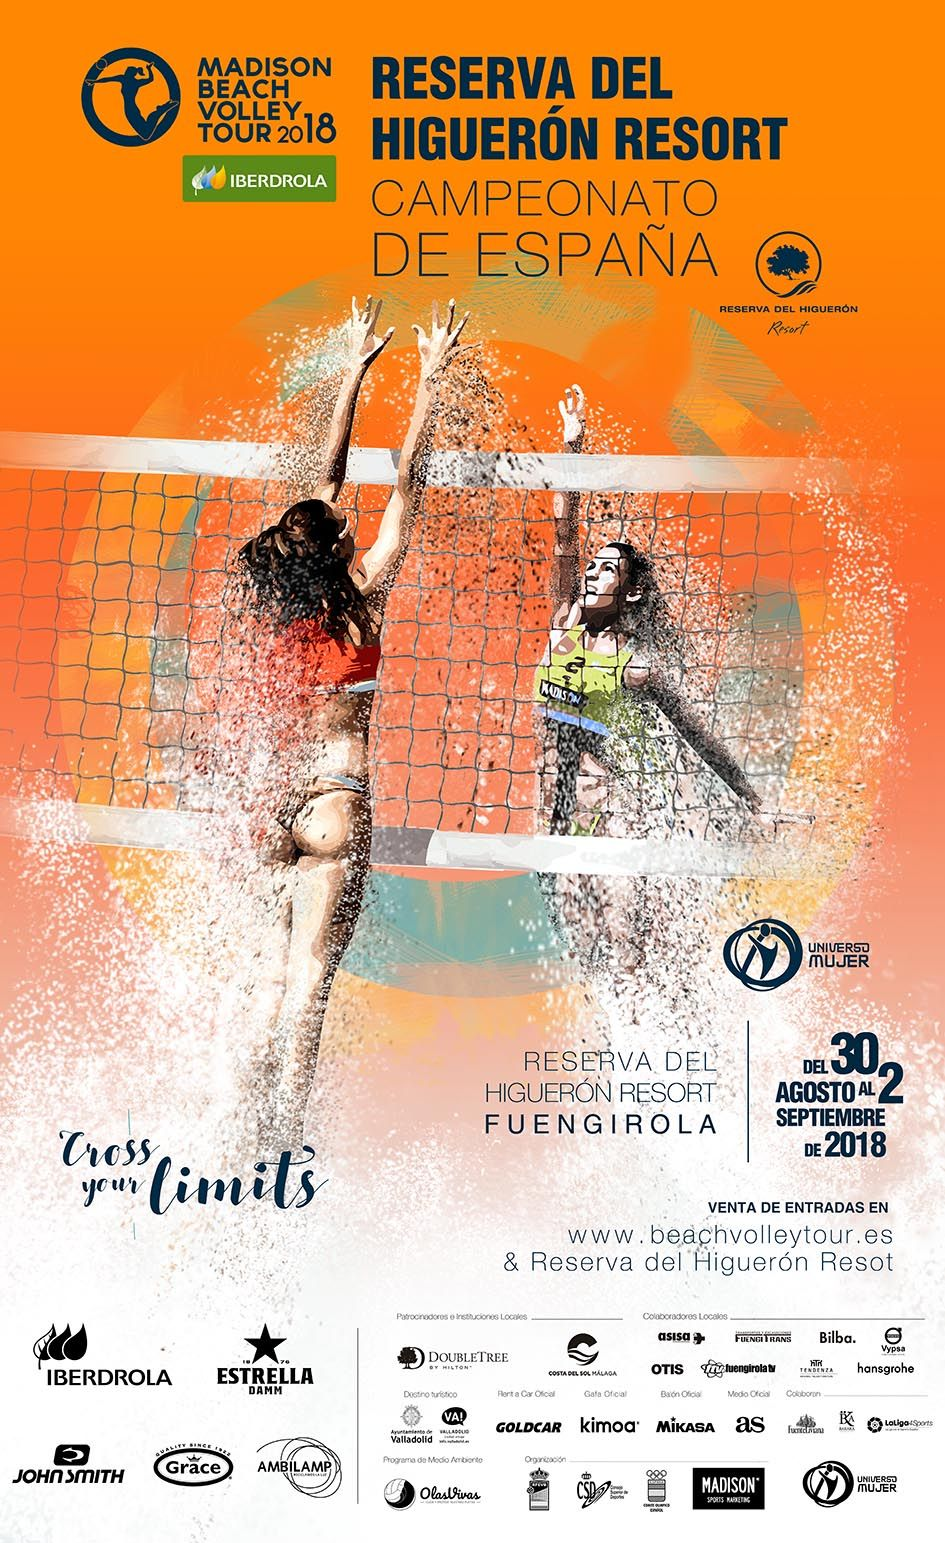 Madison Beach Volley Tour 2018